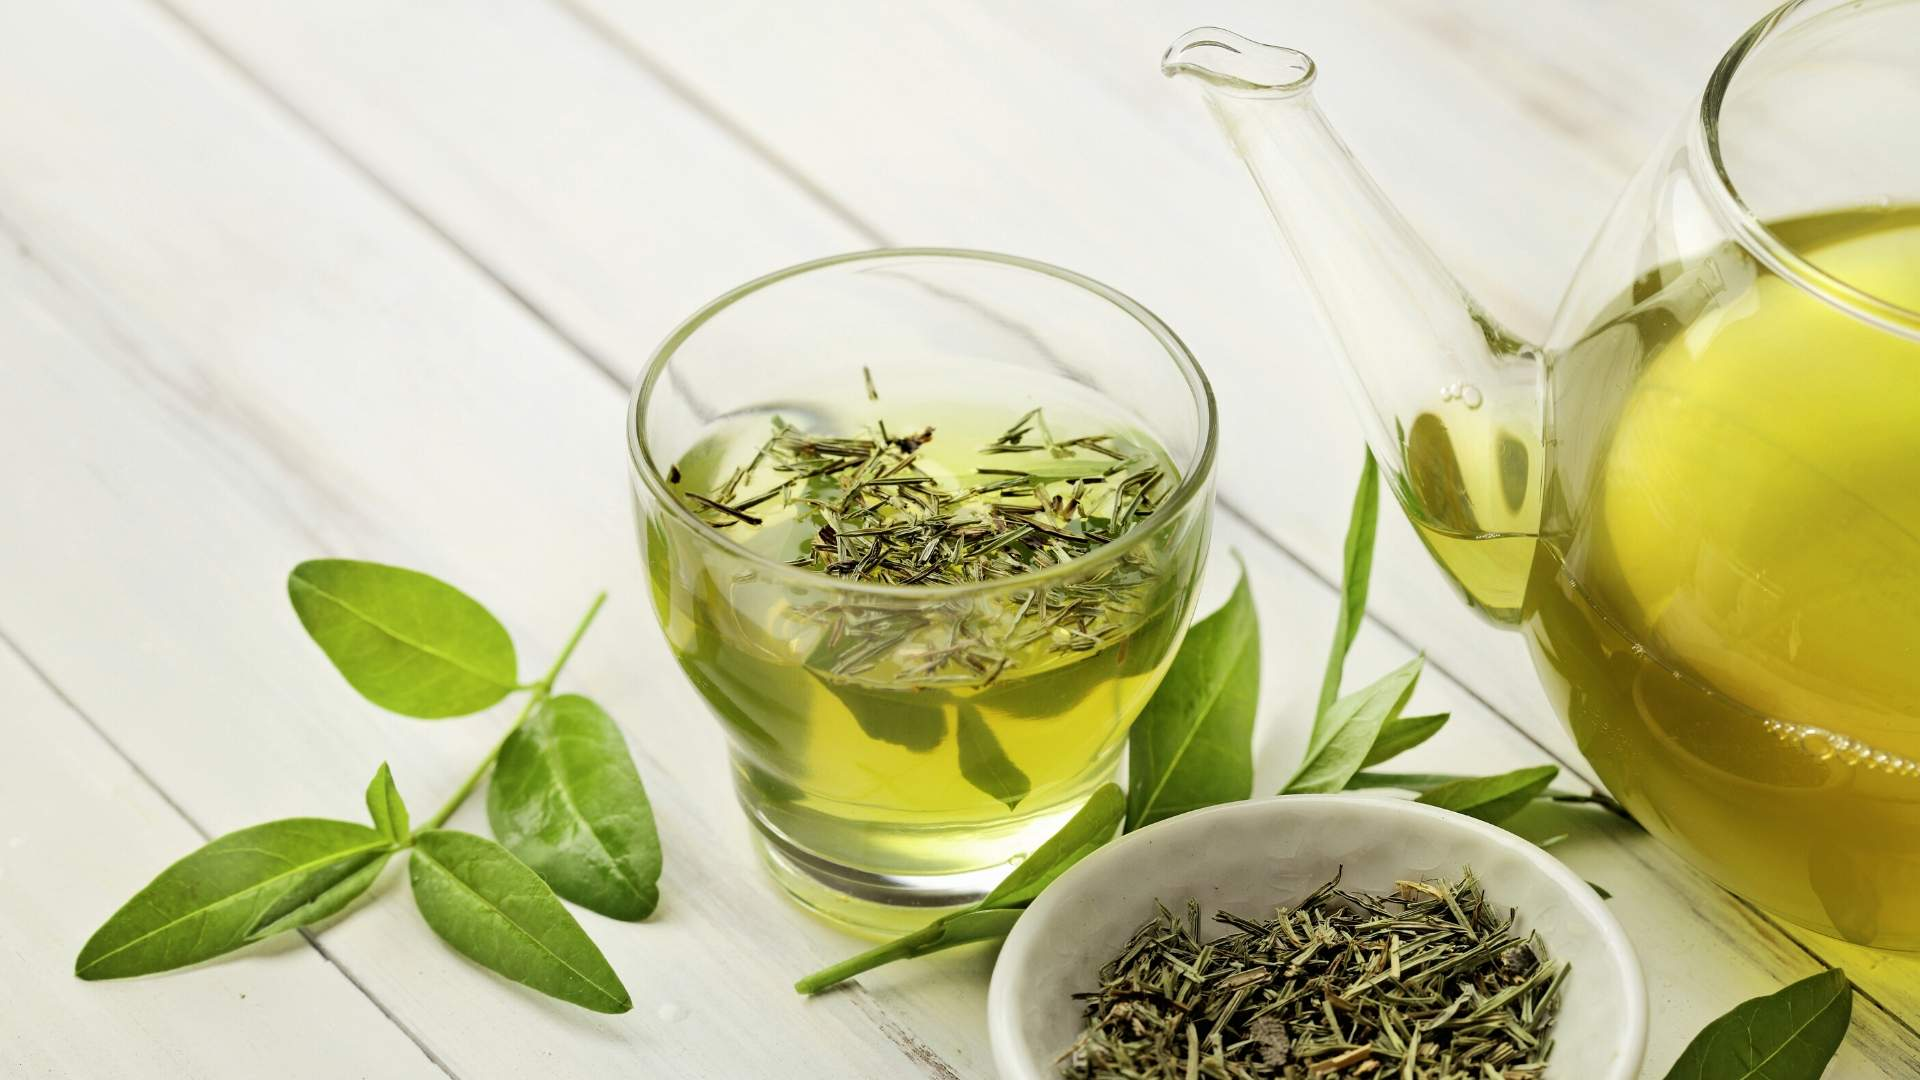 5 Healthy Benefits of Green Tea That You Probably Didn't Know